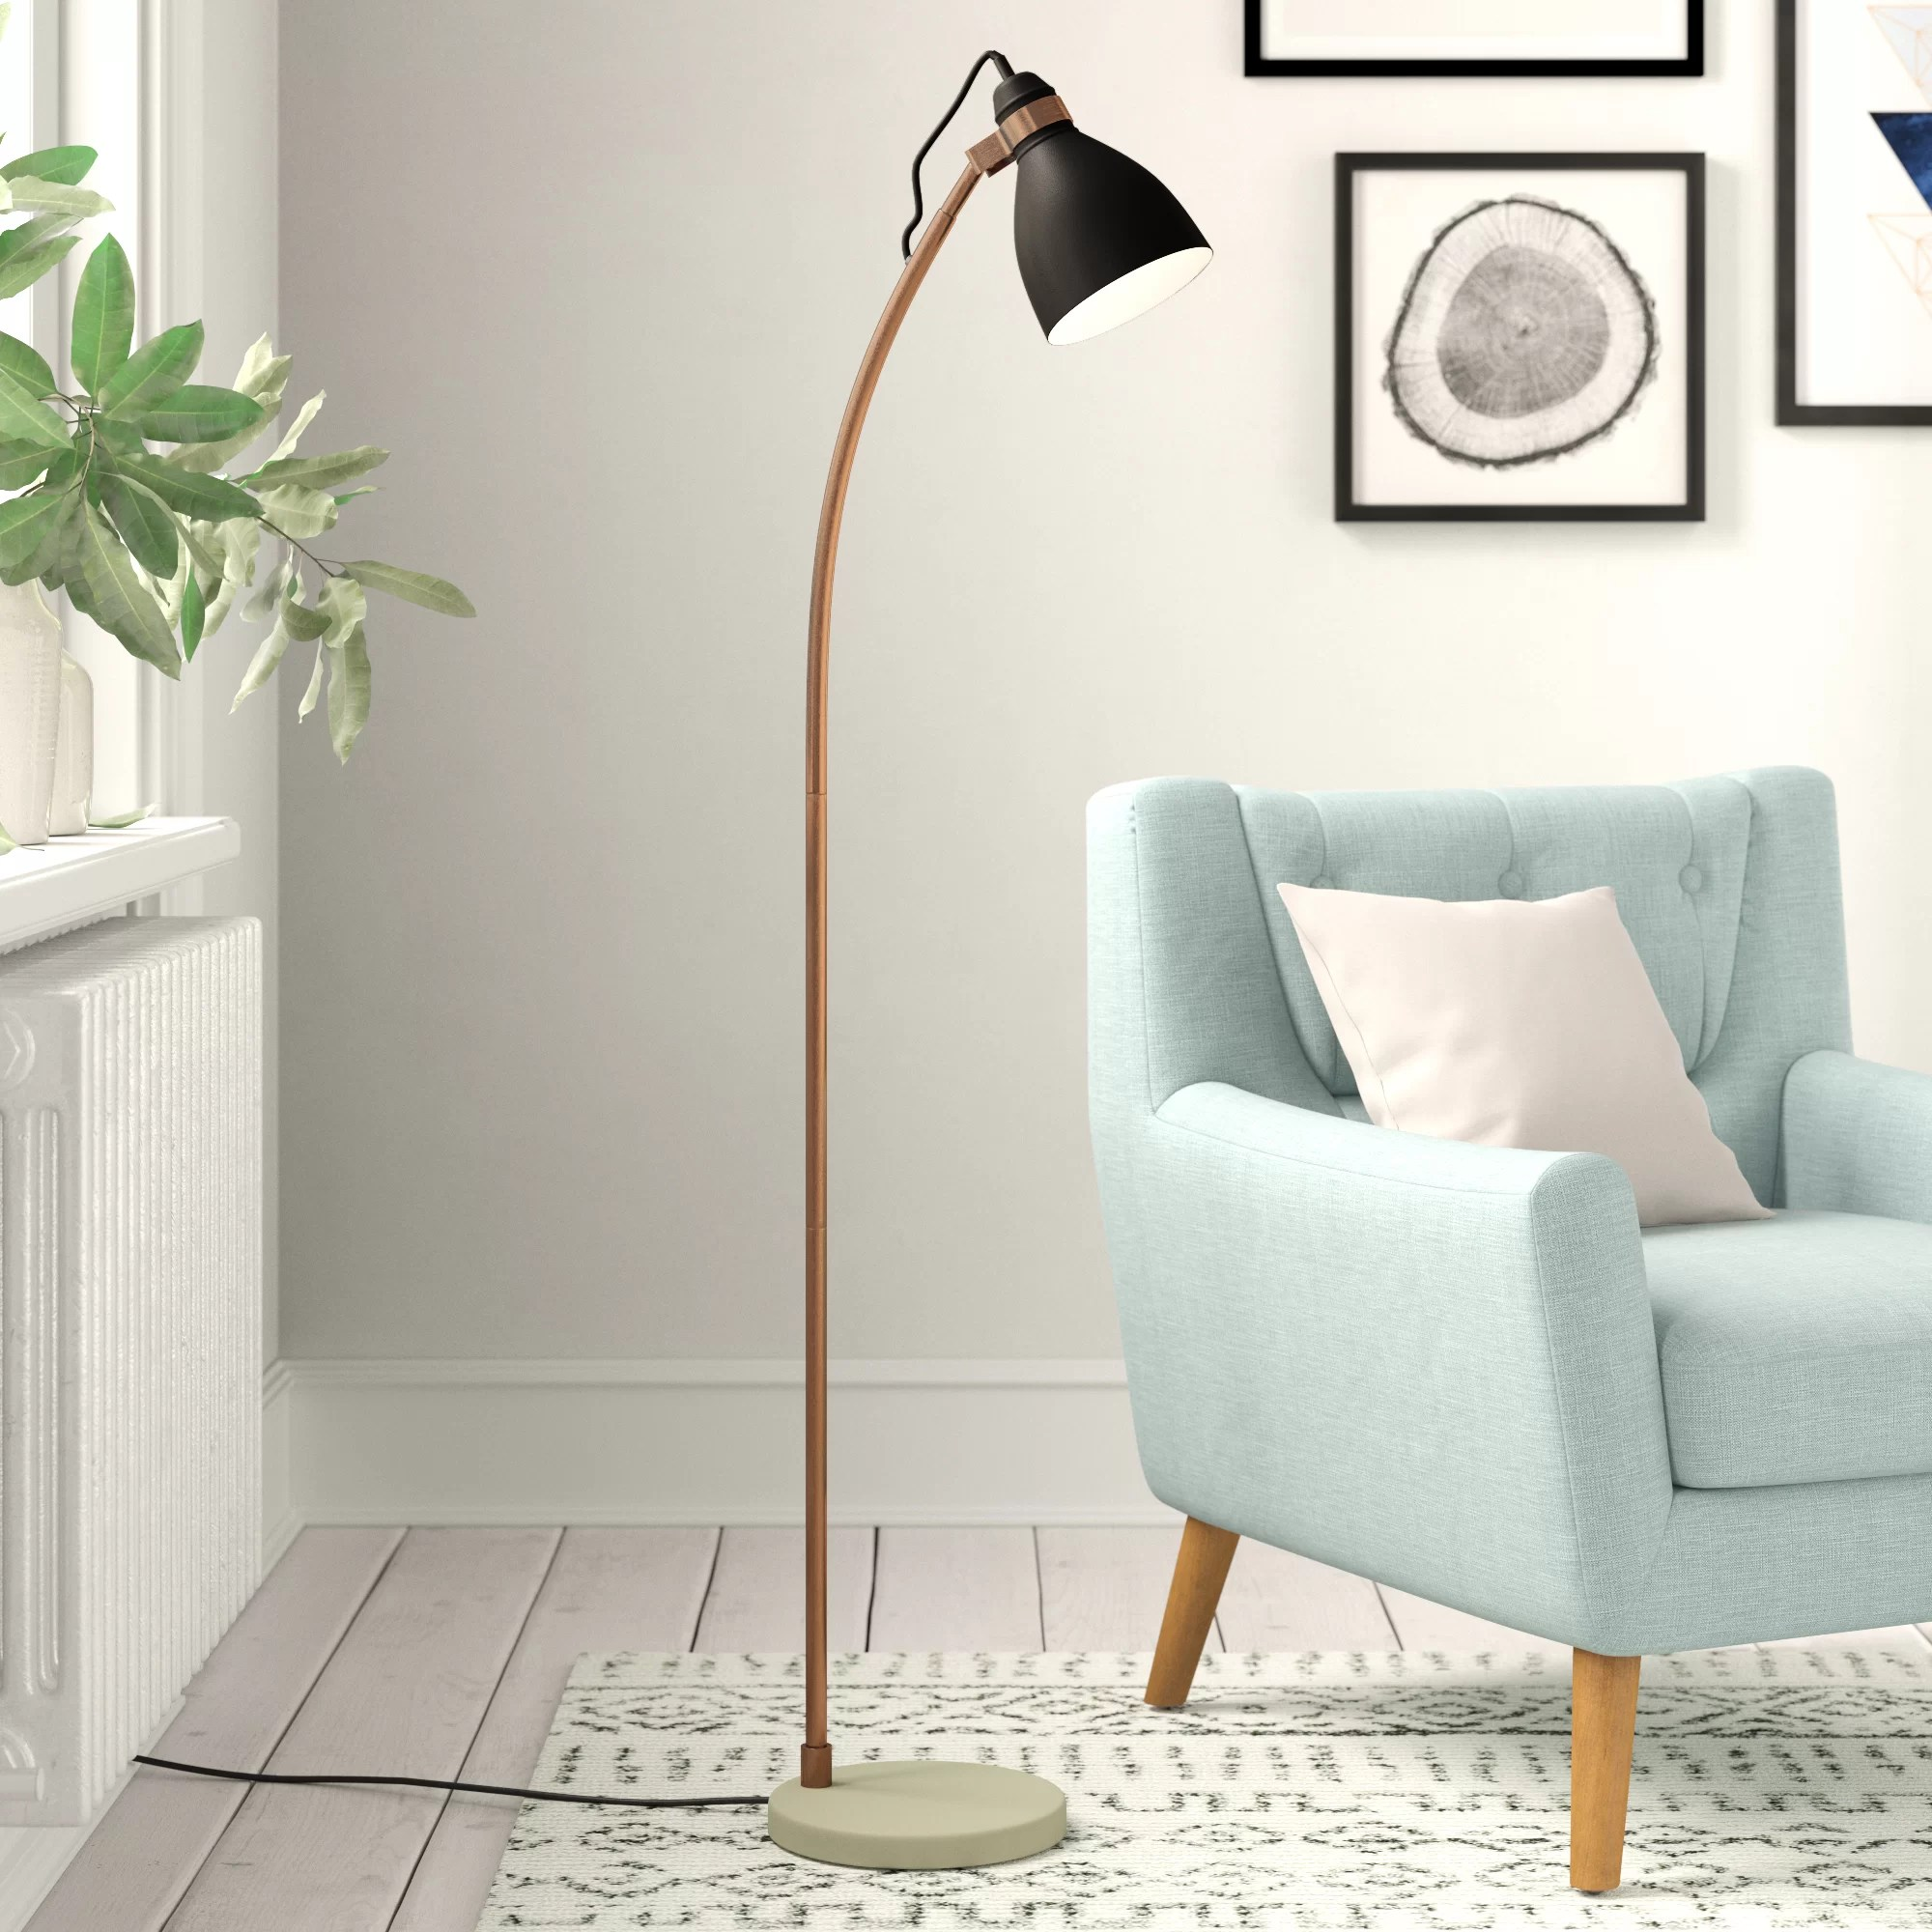 Bogenlampe Idealo Its About Romi Wayfair De